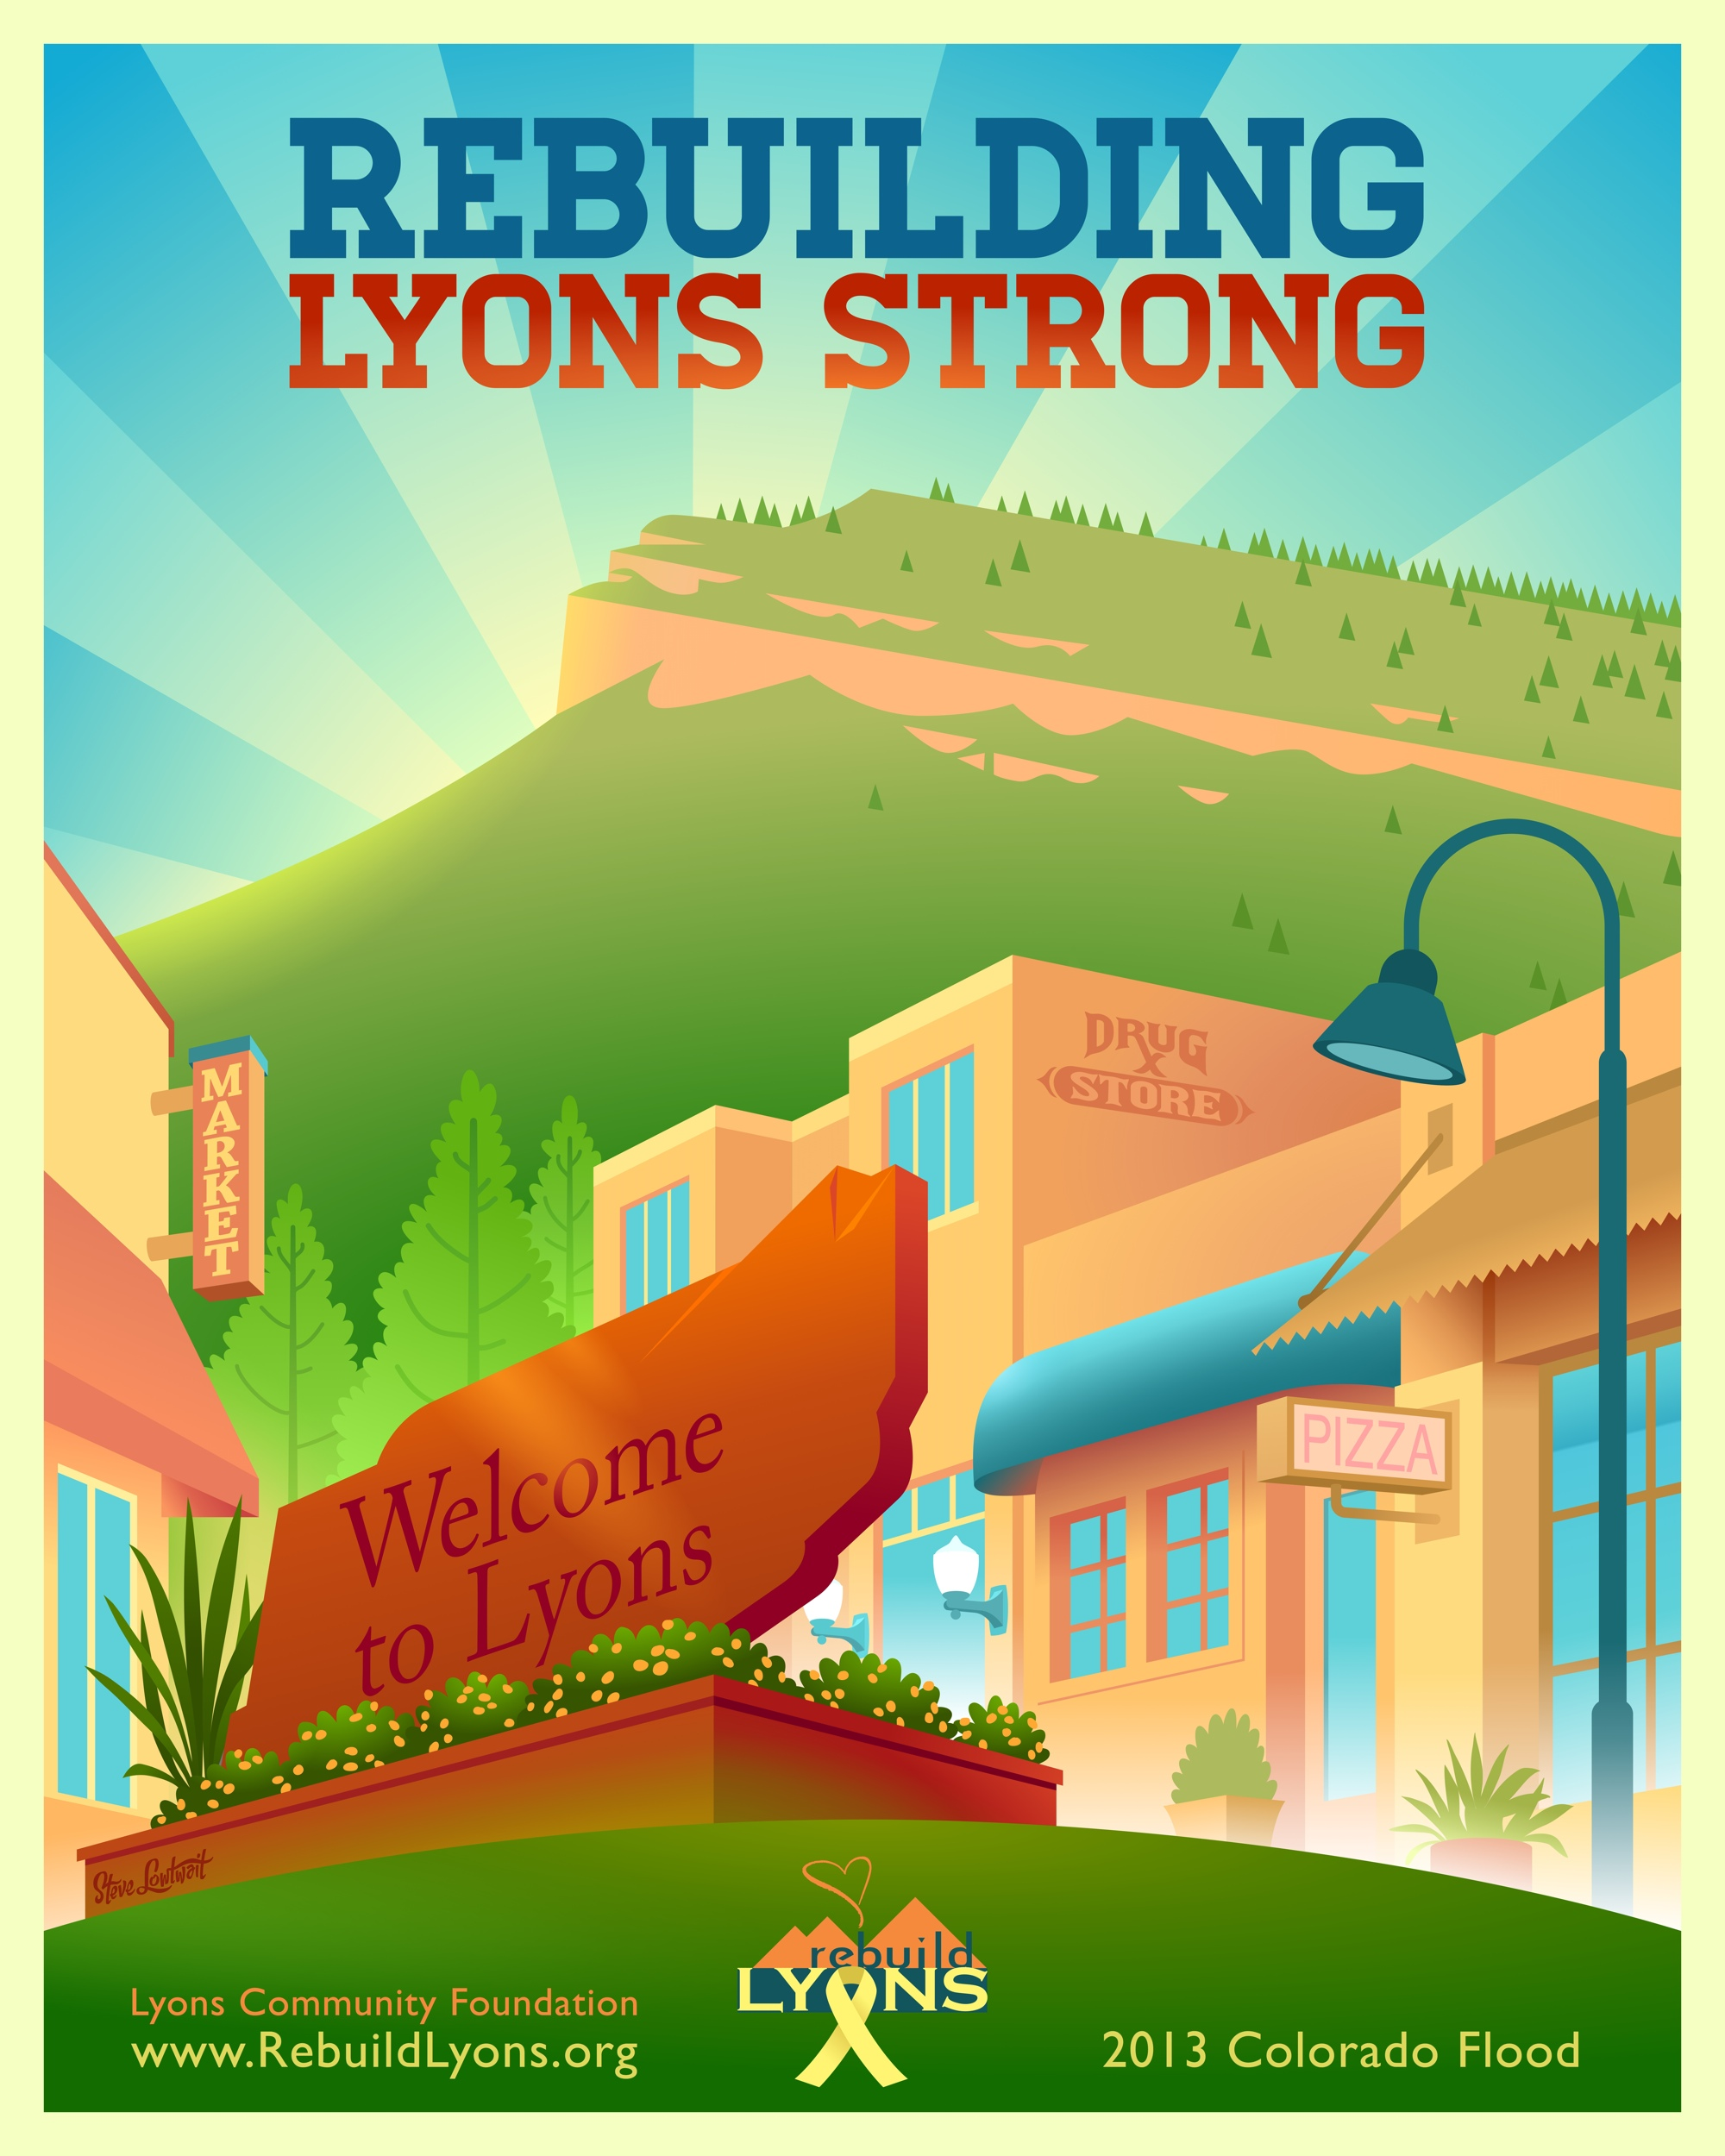 Rebuilding Lyons Strong • In September 2013, flood waters destroyed large sections of Lyons, Colorado. Rebuild costs were in the millions and this piece helped spread awareness for the restoration of the foothill town.